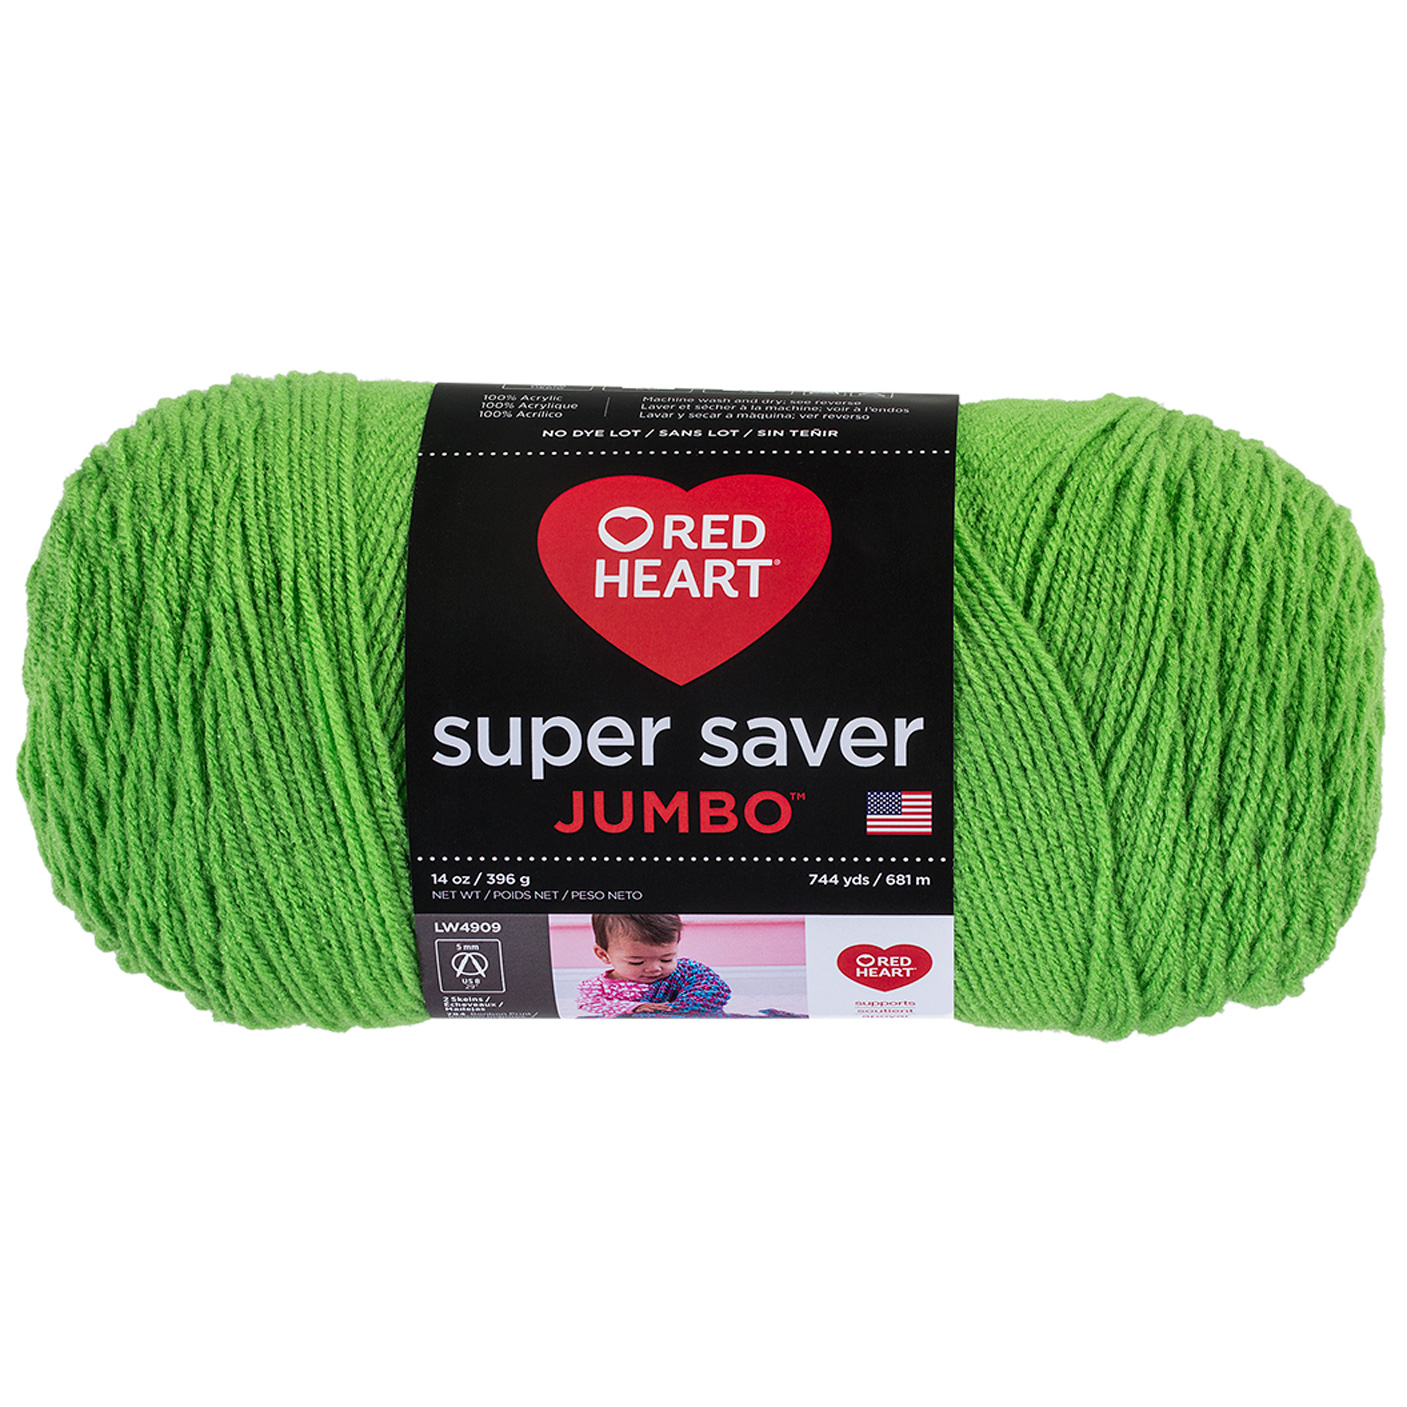 Red Heart Super Saver Jumbo Spring Green by Coats & Clark in USA